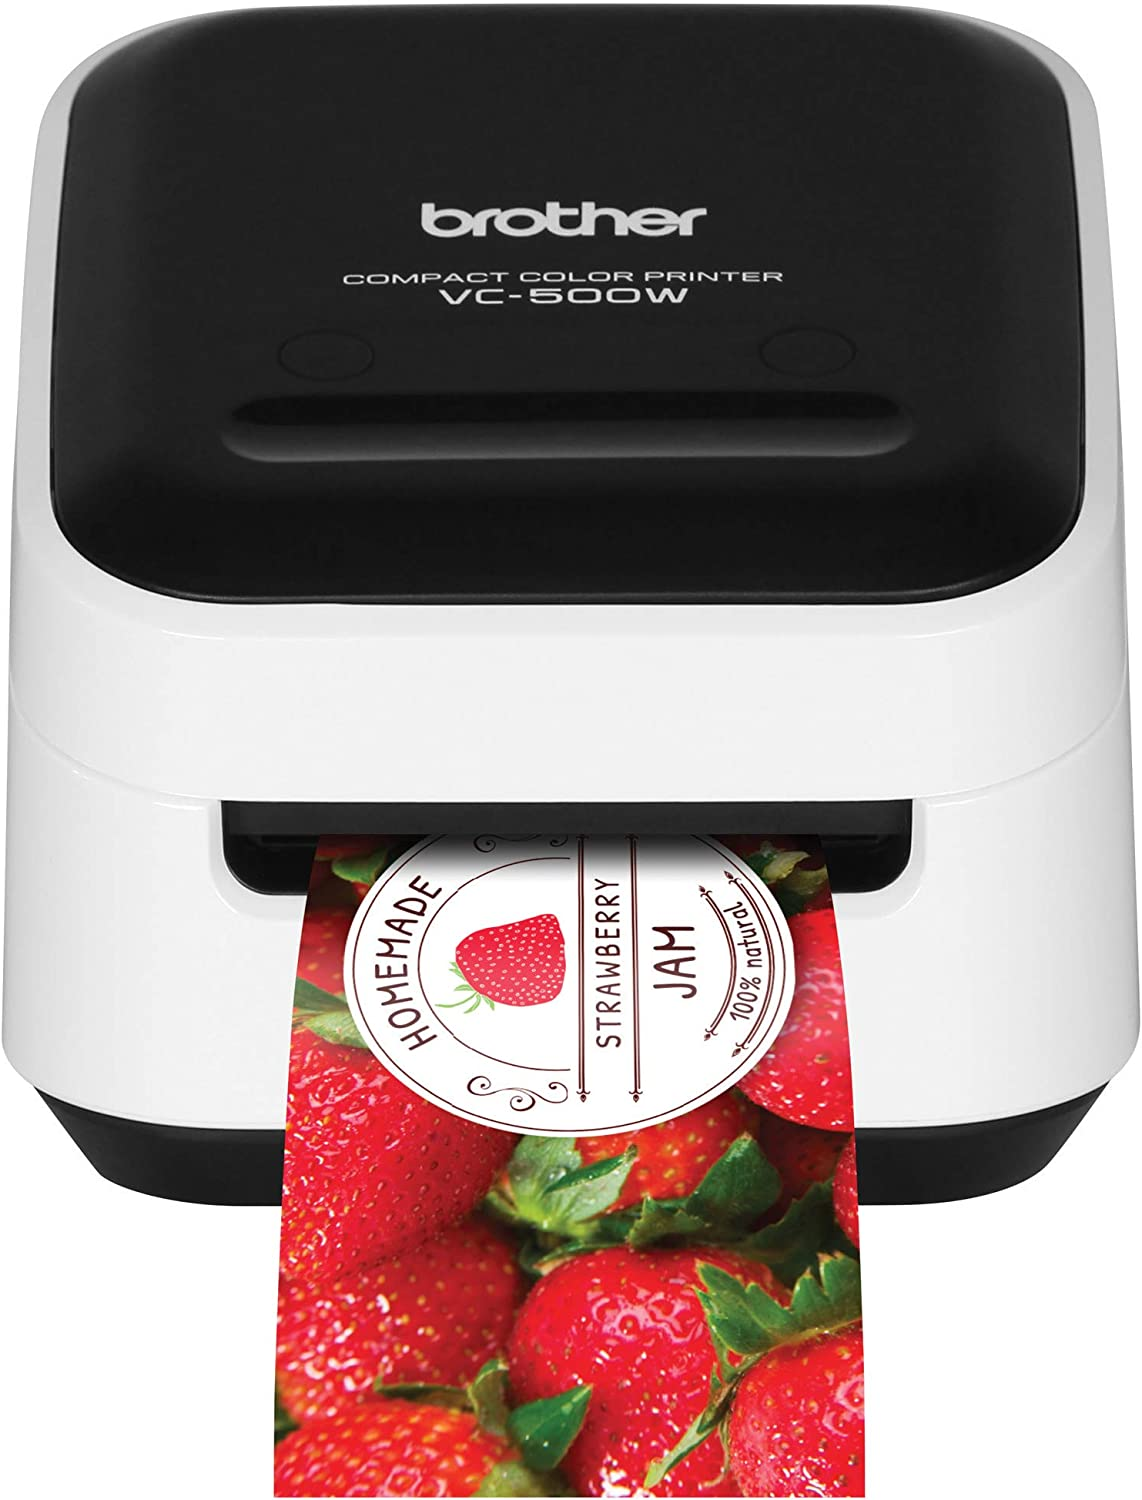 Brother VC-500W Versatile Compact Color Label and Photo Printer with Wireless Networking: Electronics